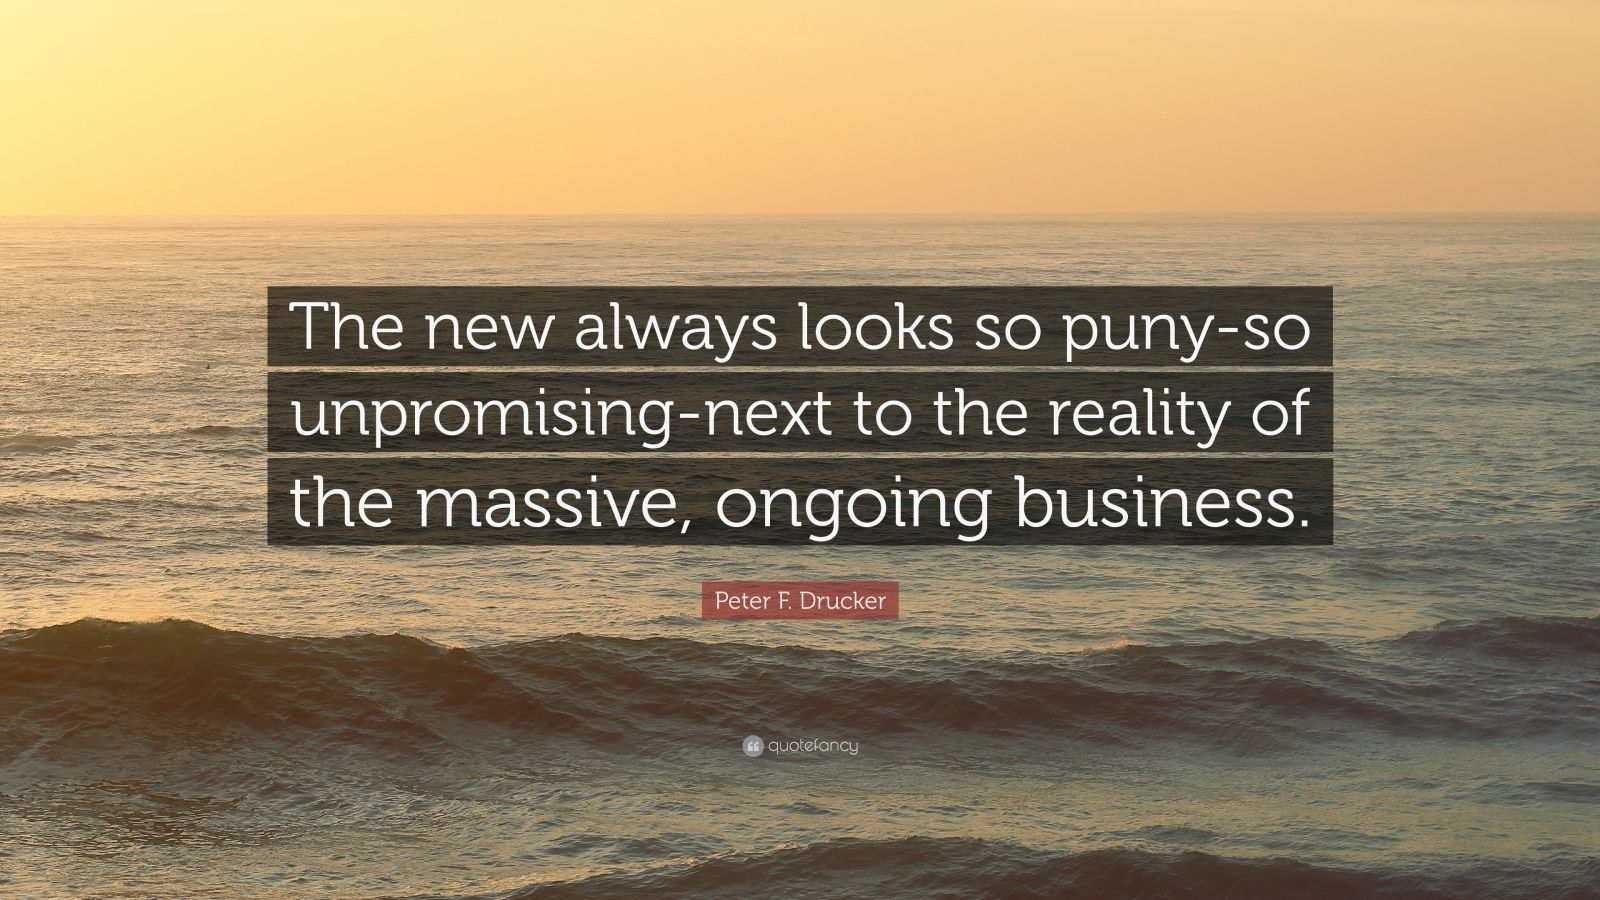 """Peter F. Drucker Quote: """"The new always looks so puny-so unpromising-next to the reality of the massive, ongoing business."""""""